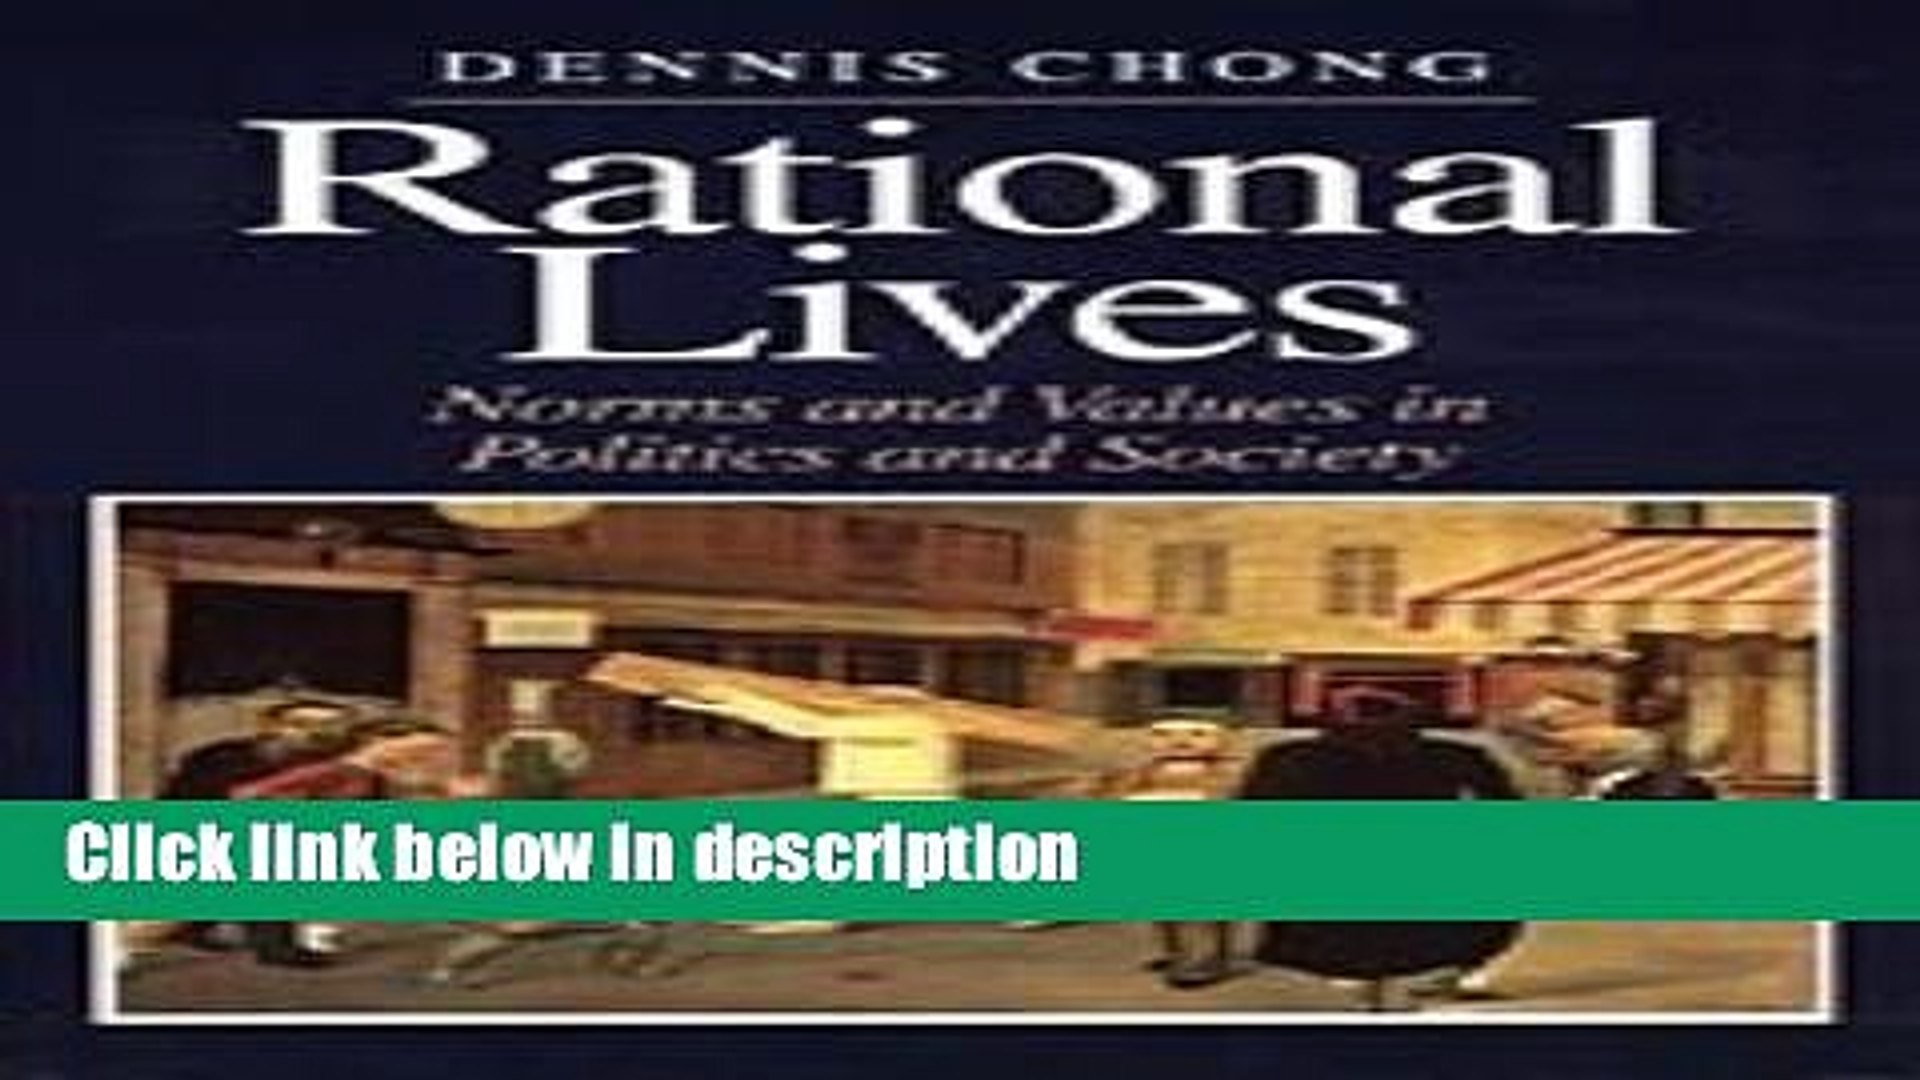 Books Rational Lives: Norms and Values in Politics and Society (American Politics and Political